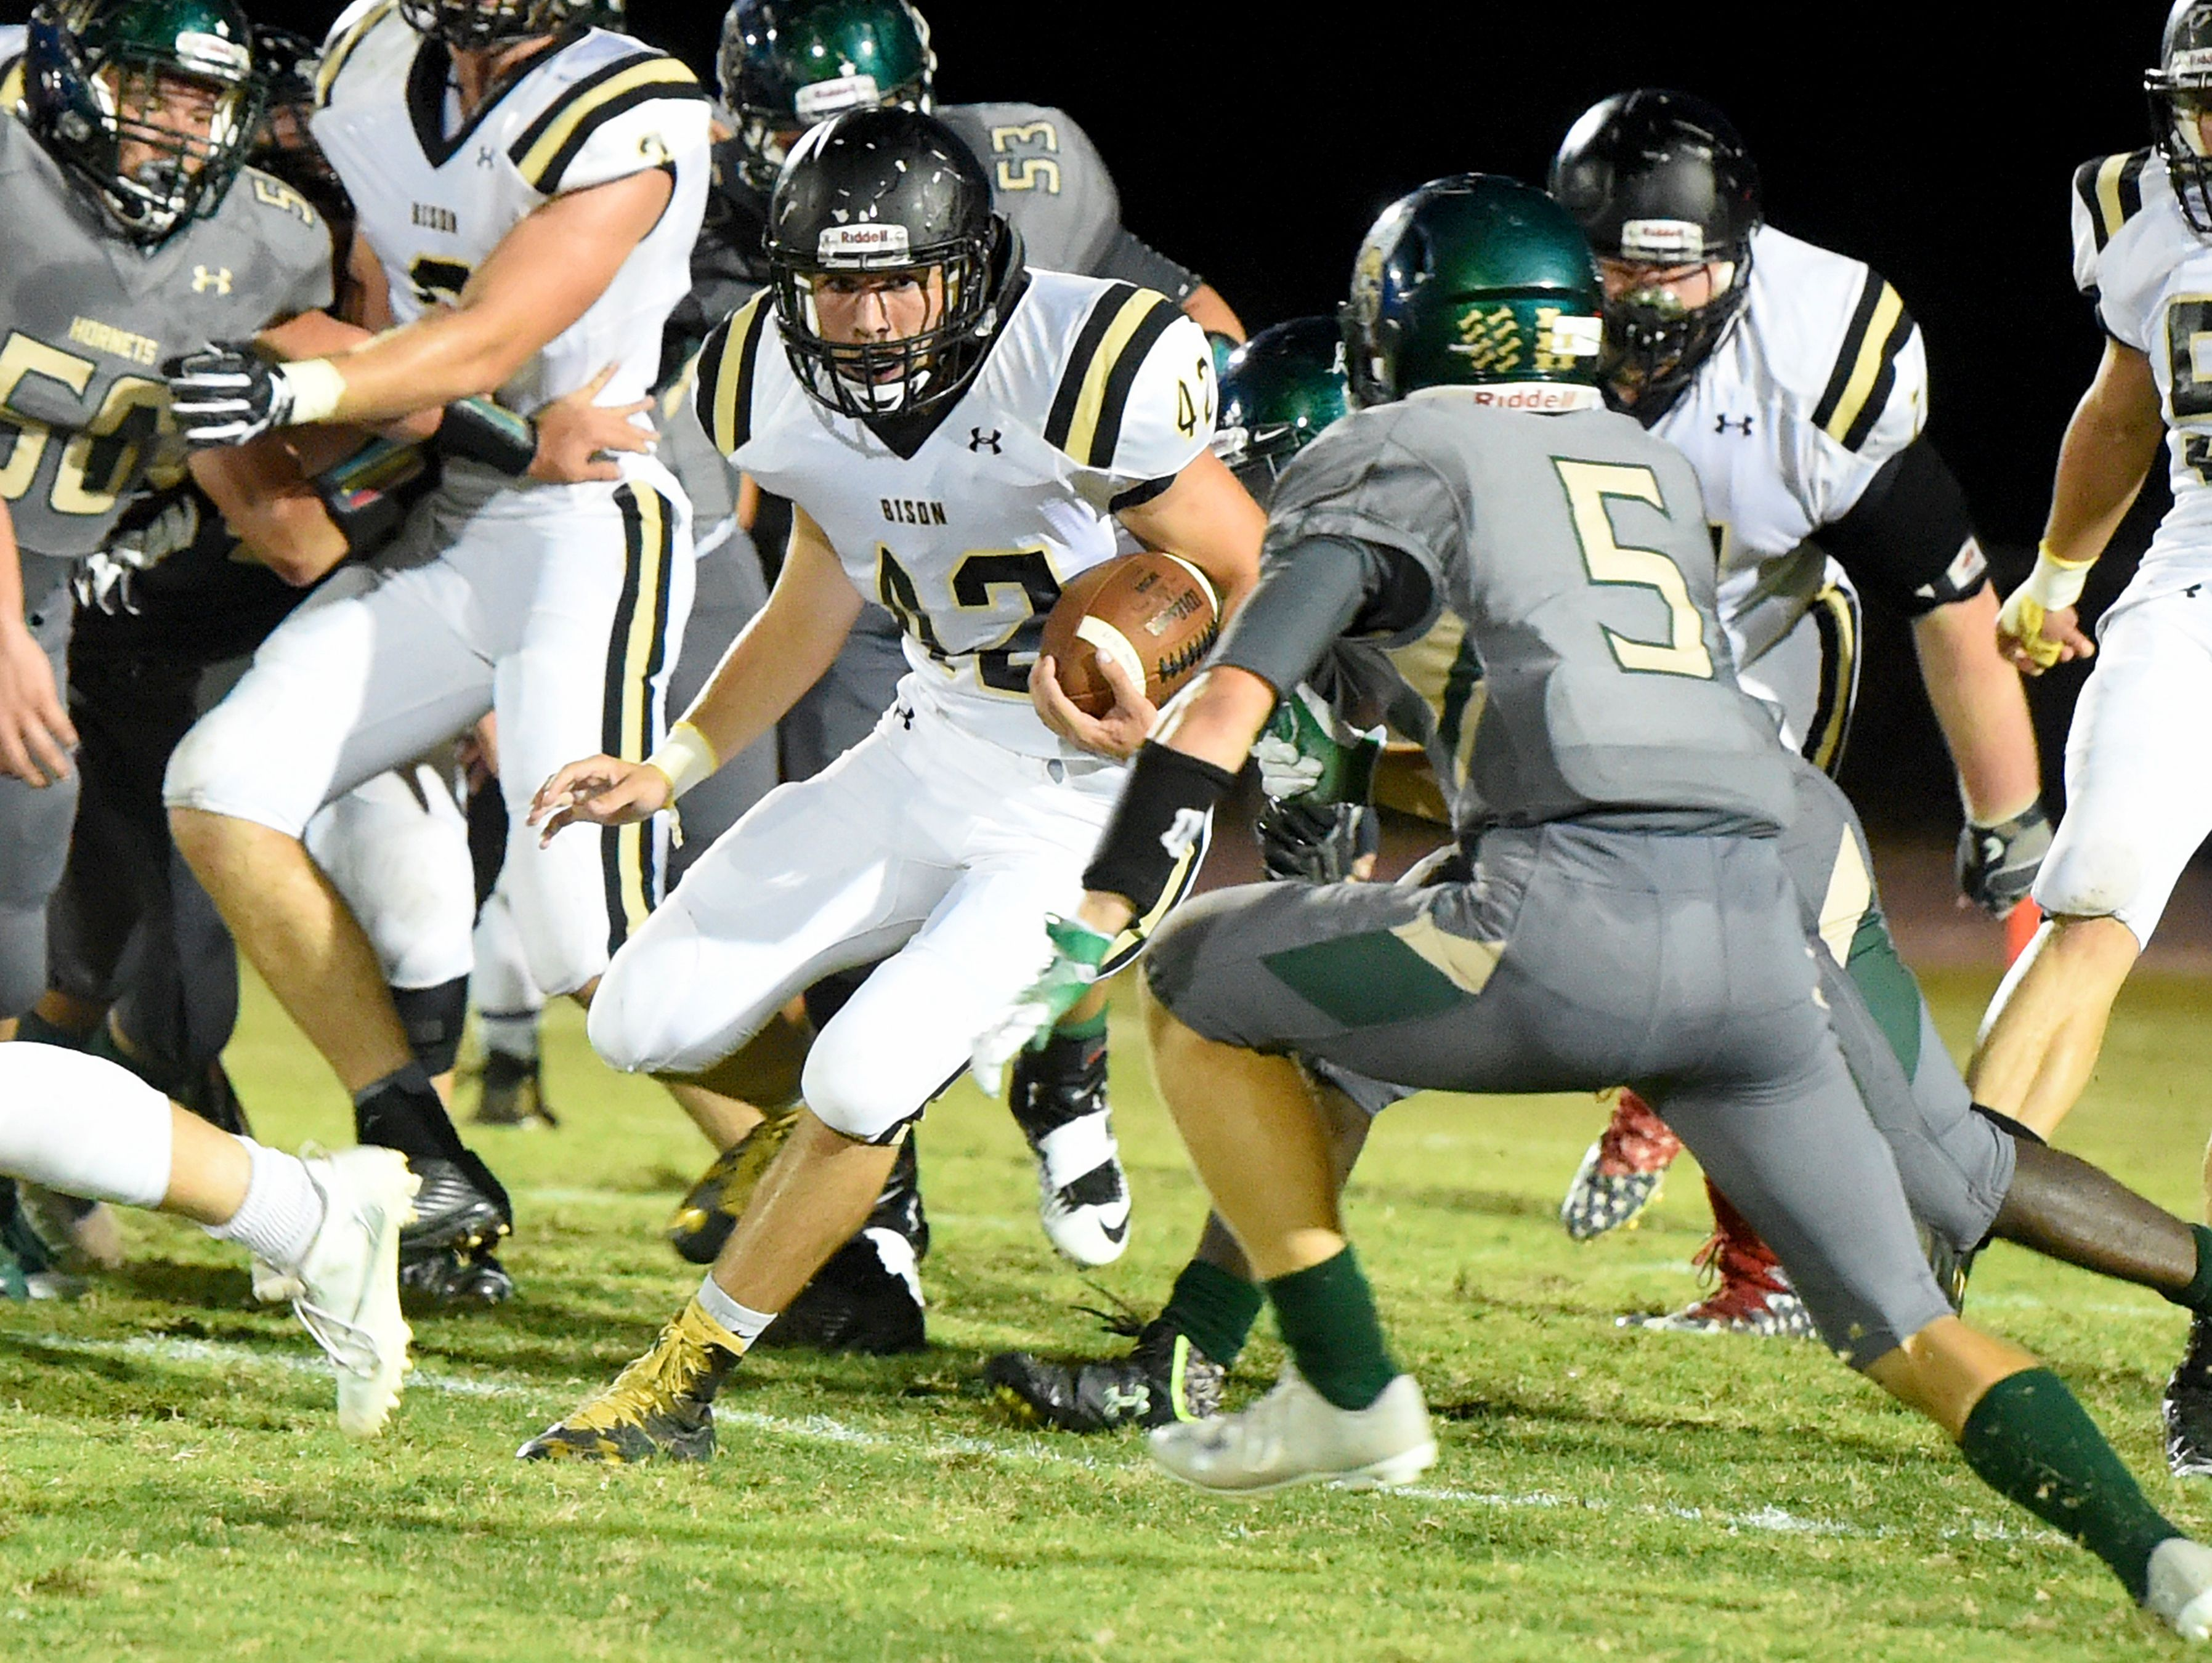 Buffalo Gap's Jake Callison runs the football for 22 yards and a first down during a football game played in Fishersville on Friday, Sept. 23, 2016.